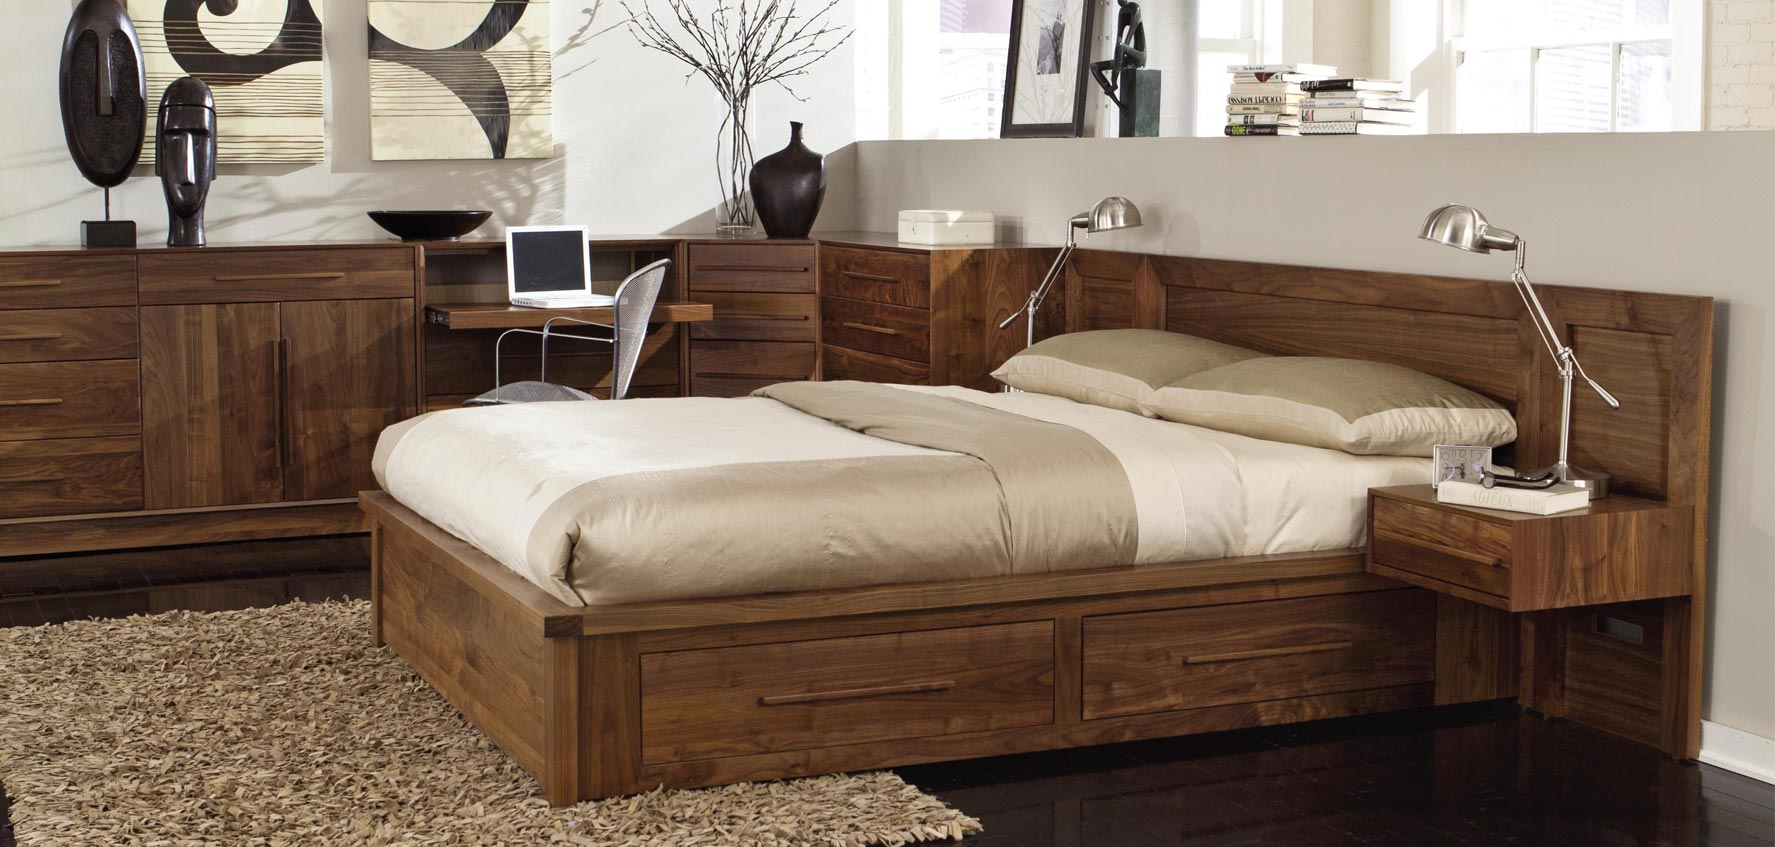 Moduluxe Bedroom Furniture By Copeland Vermont Woods Studios - Copeland bedroom furniture